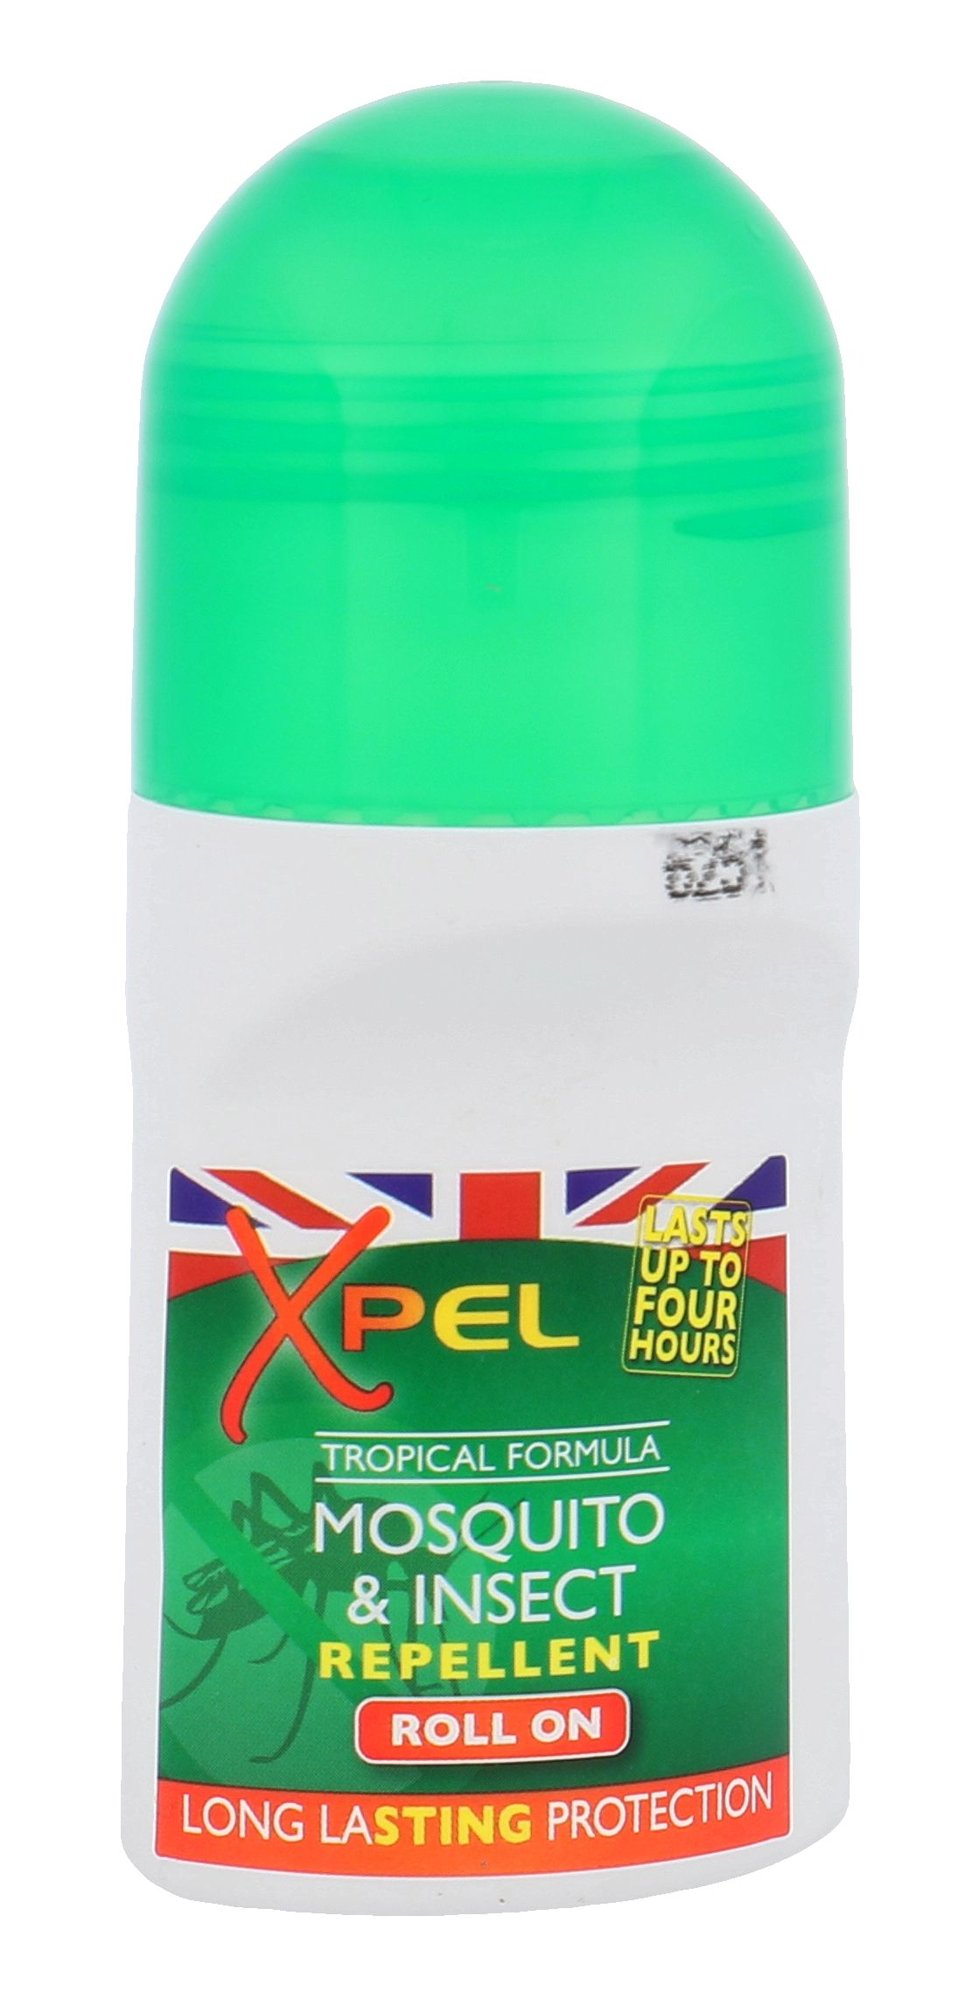 Xpel Mosquito & Insect Cosmetic 75ml